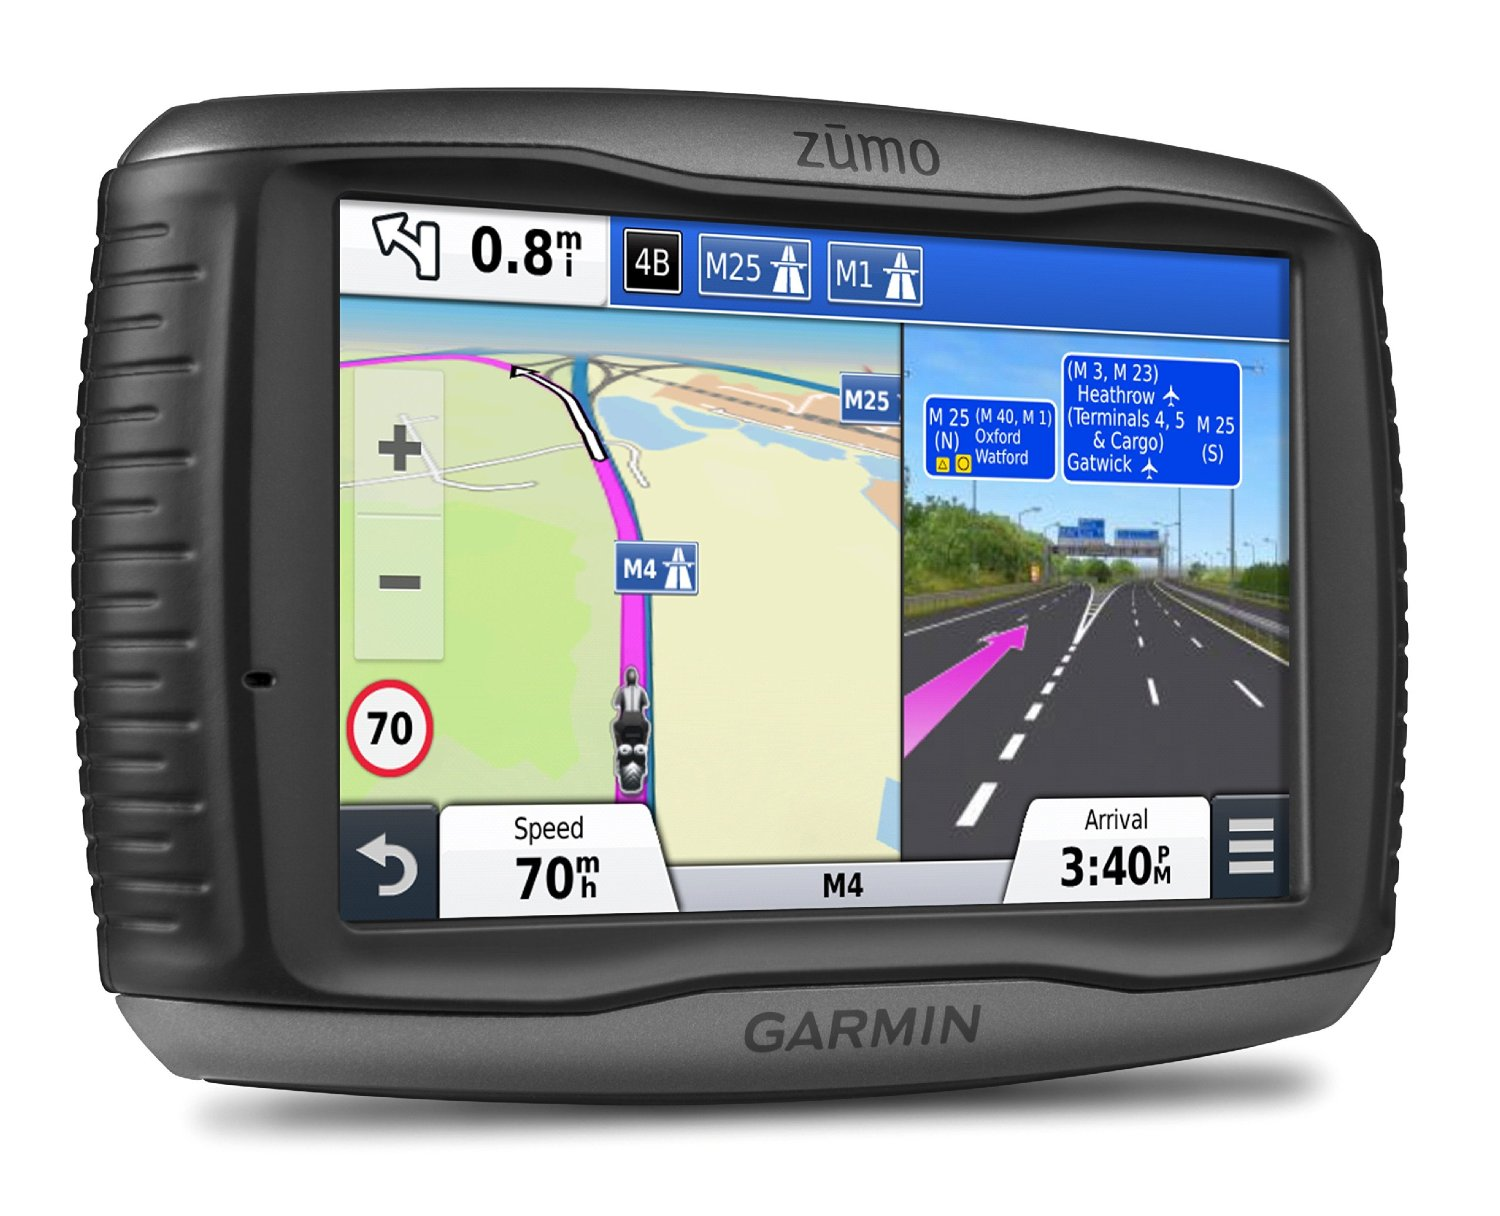 garmin zumo 590lm motorrad navigation. Black Bedroom Furniture Sets. Home Design Ideas